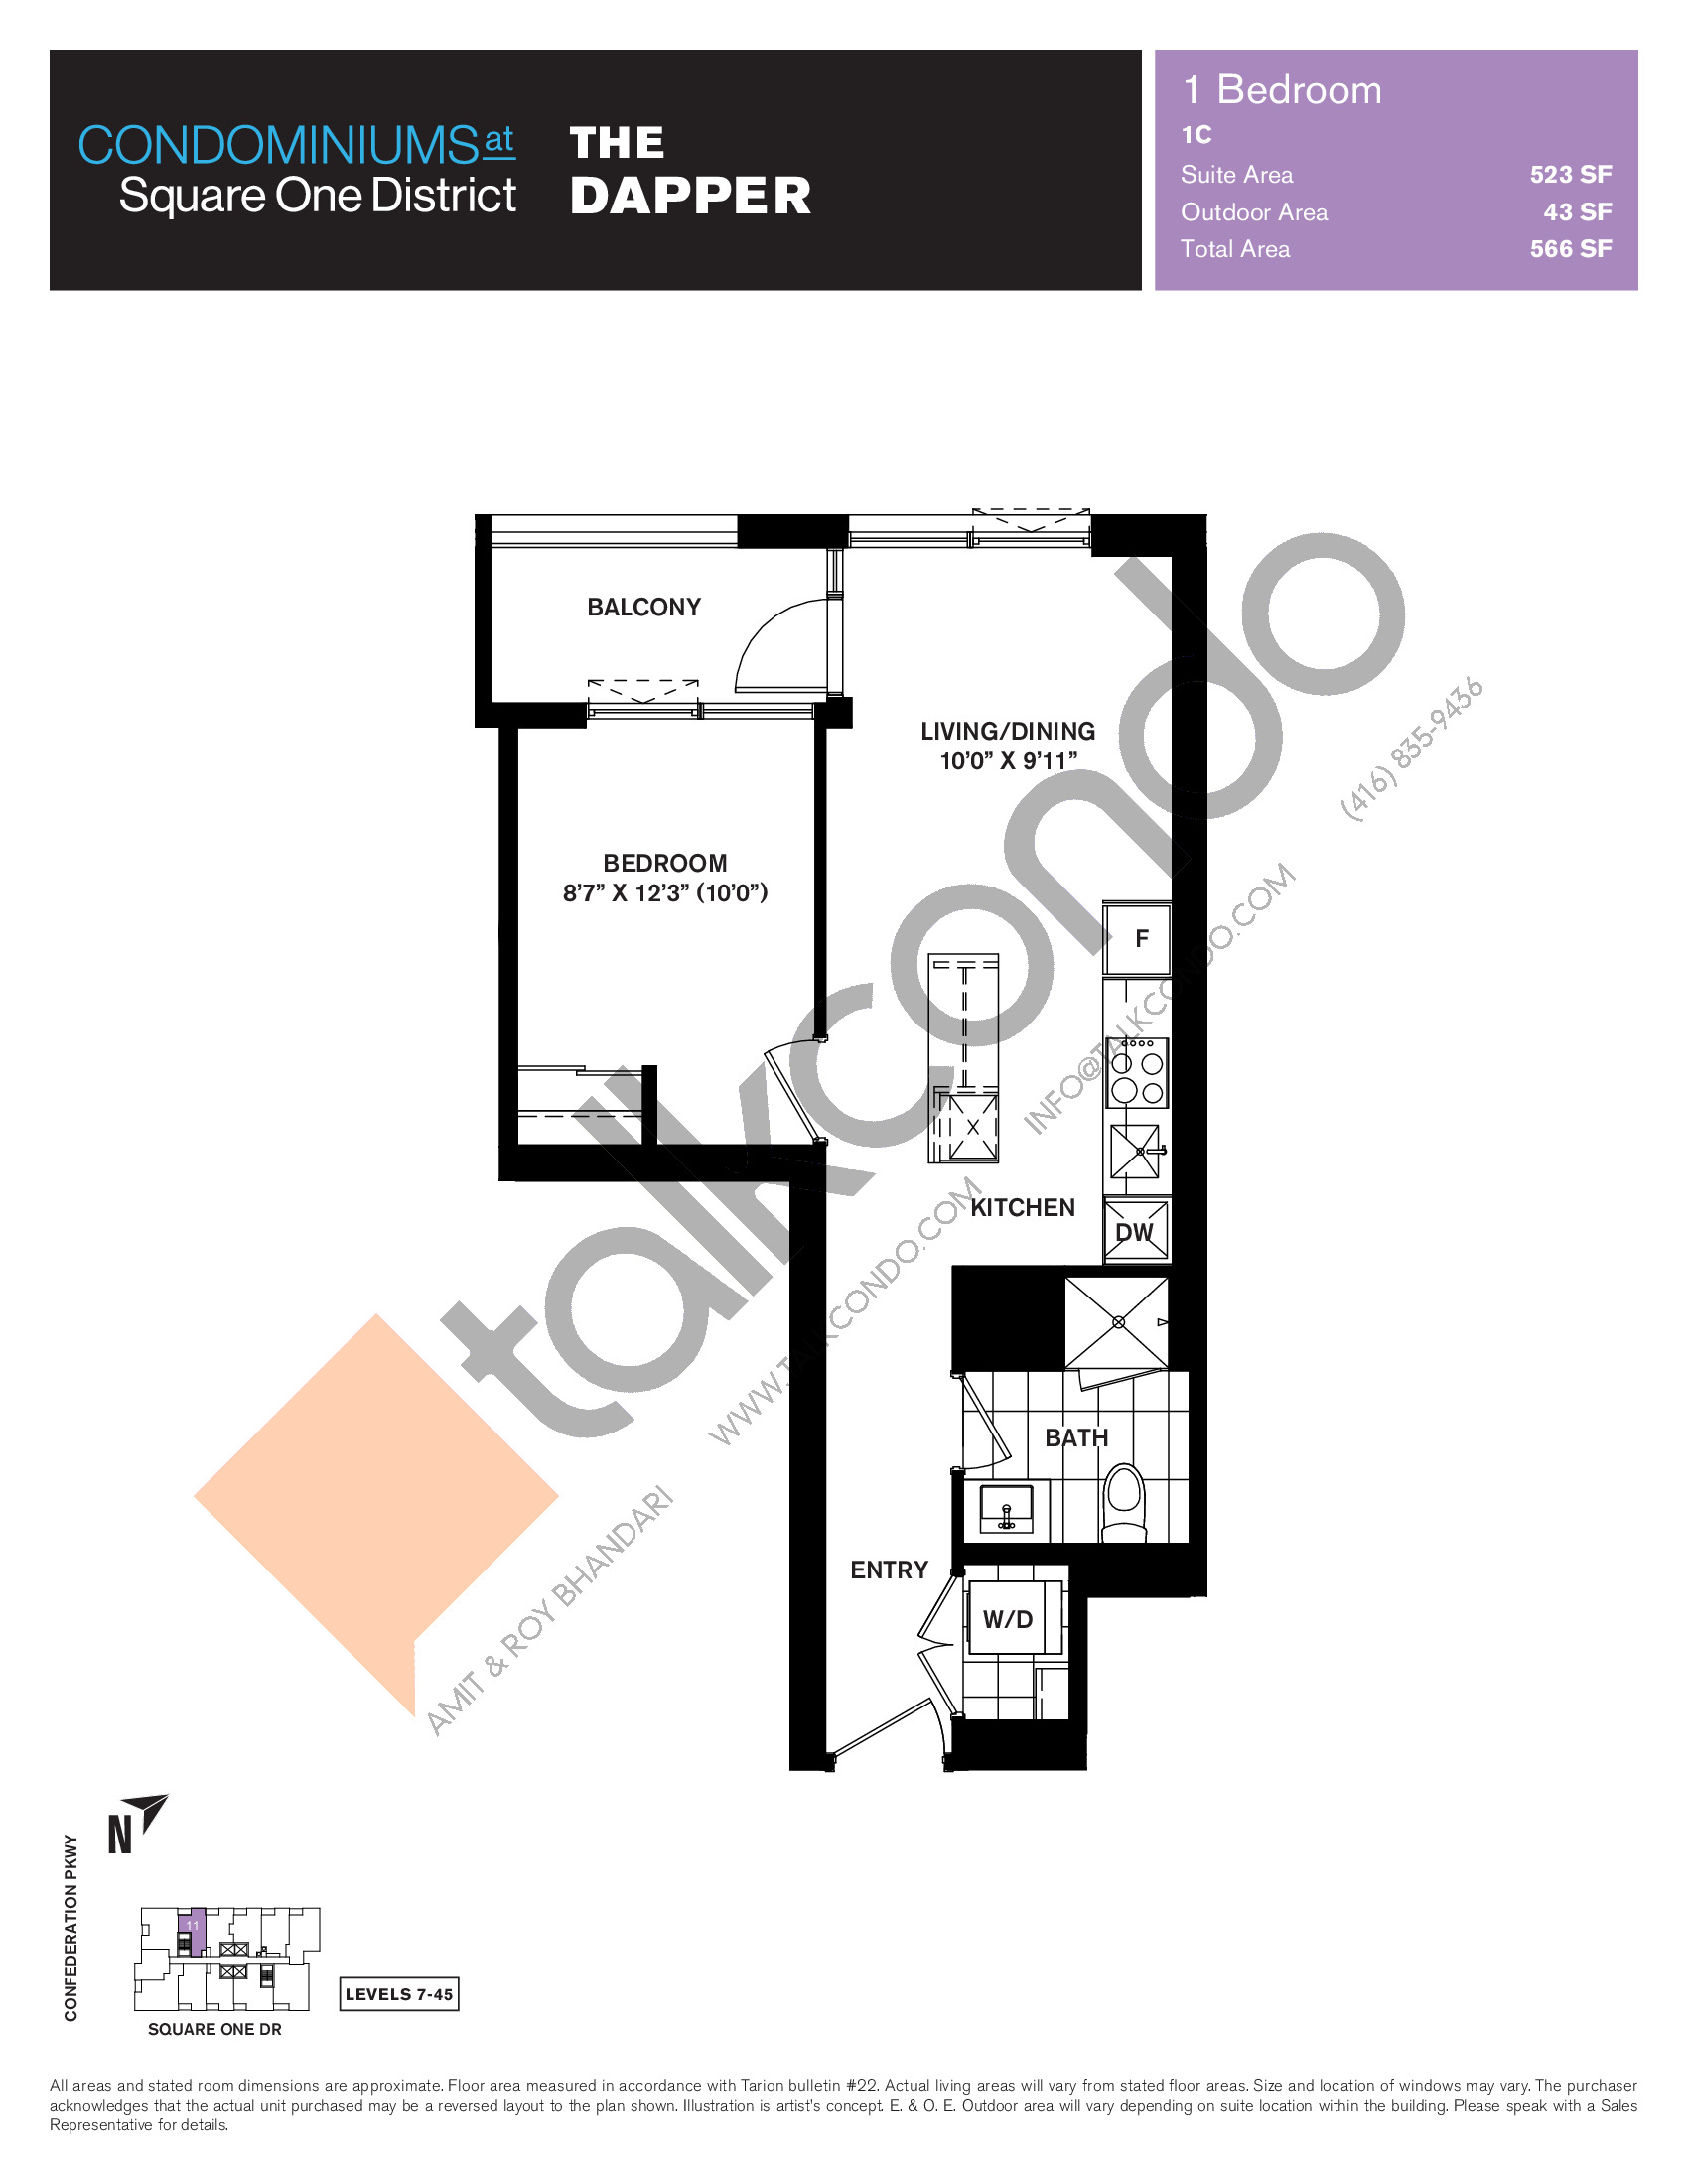 The Dapper Floor Plan at Condominiums at Square One District - 523 sq.ft